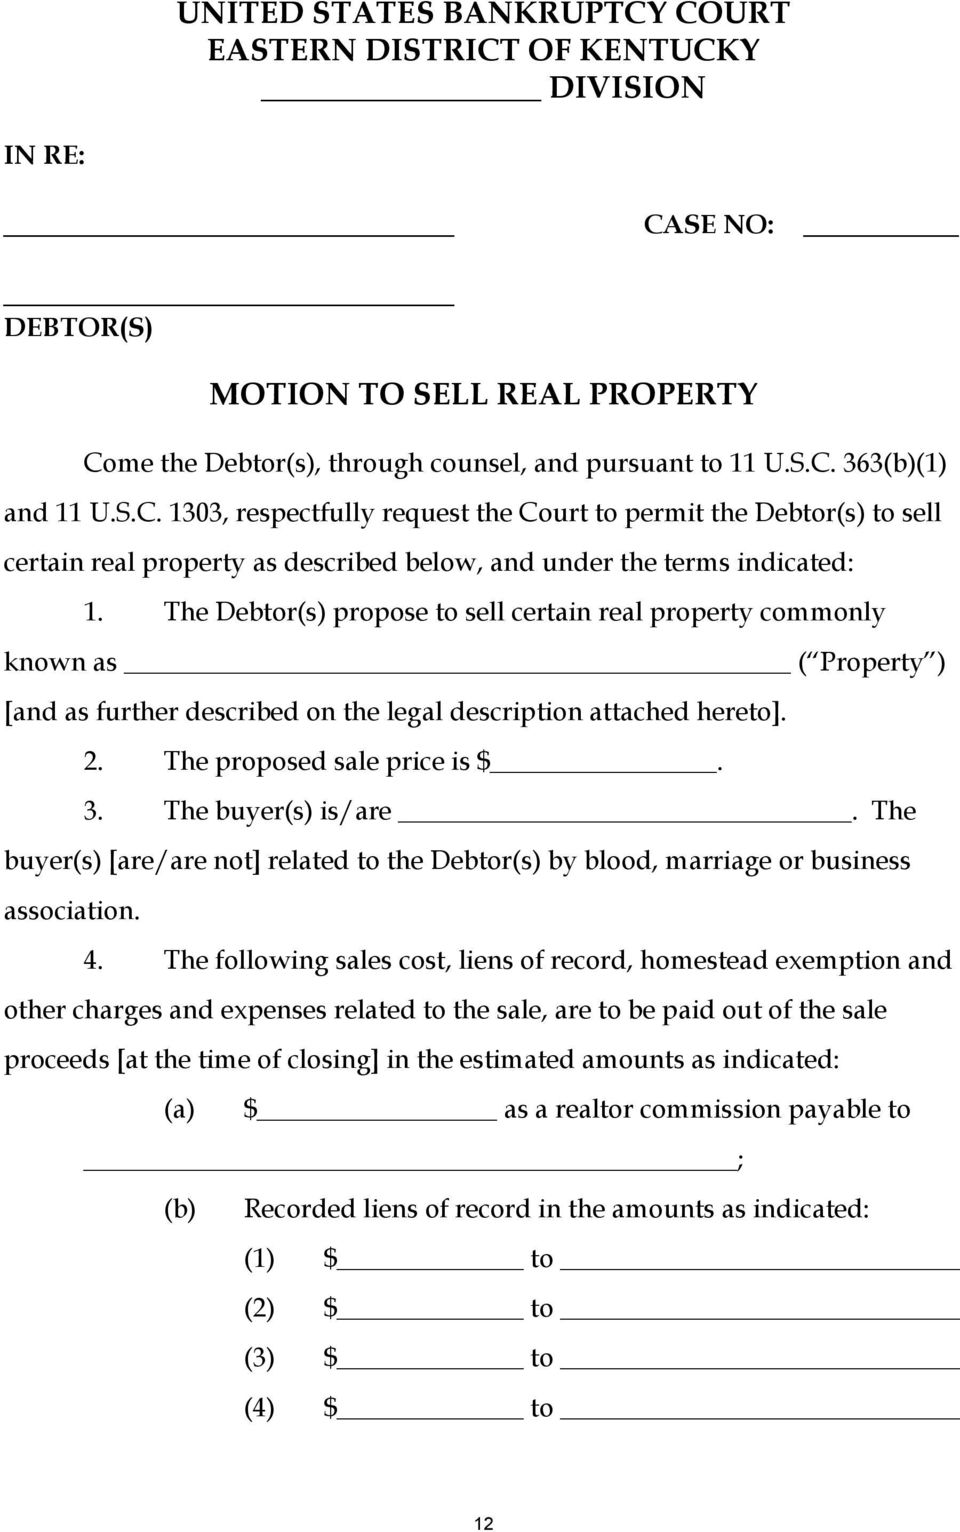 The Debtor(s) propose to sell certain real property commonly known as ( Property ) [and as further described on the legal description attached hereto]. 2. The proposed sale price is $. 3.